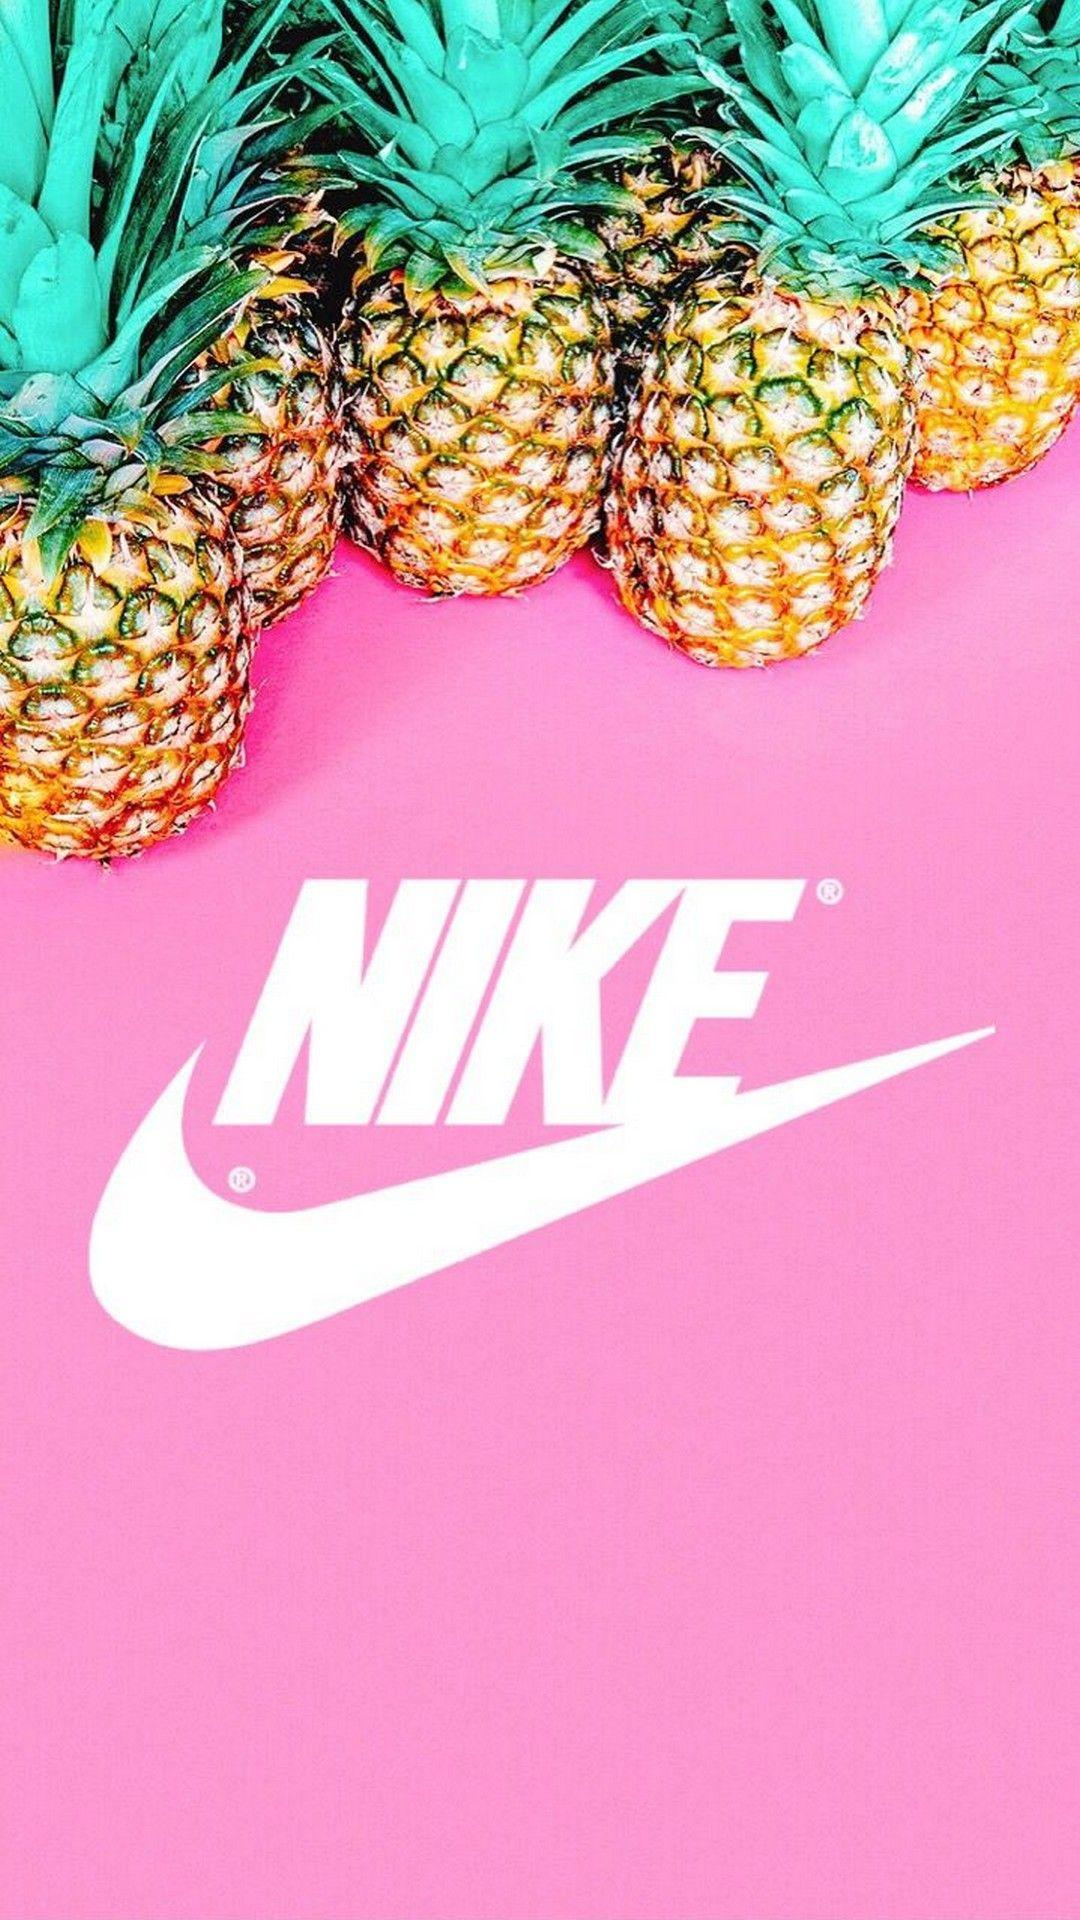 Nike Backgrounds Wallpaper Cave